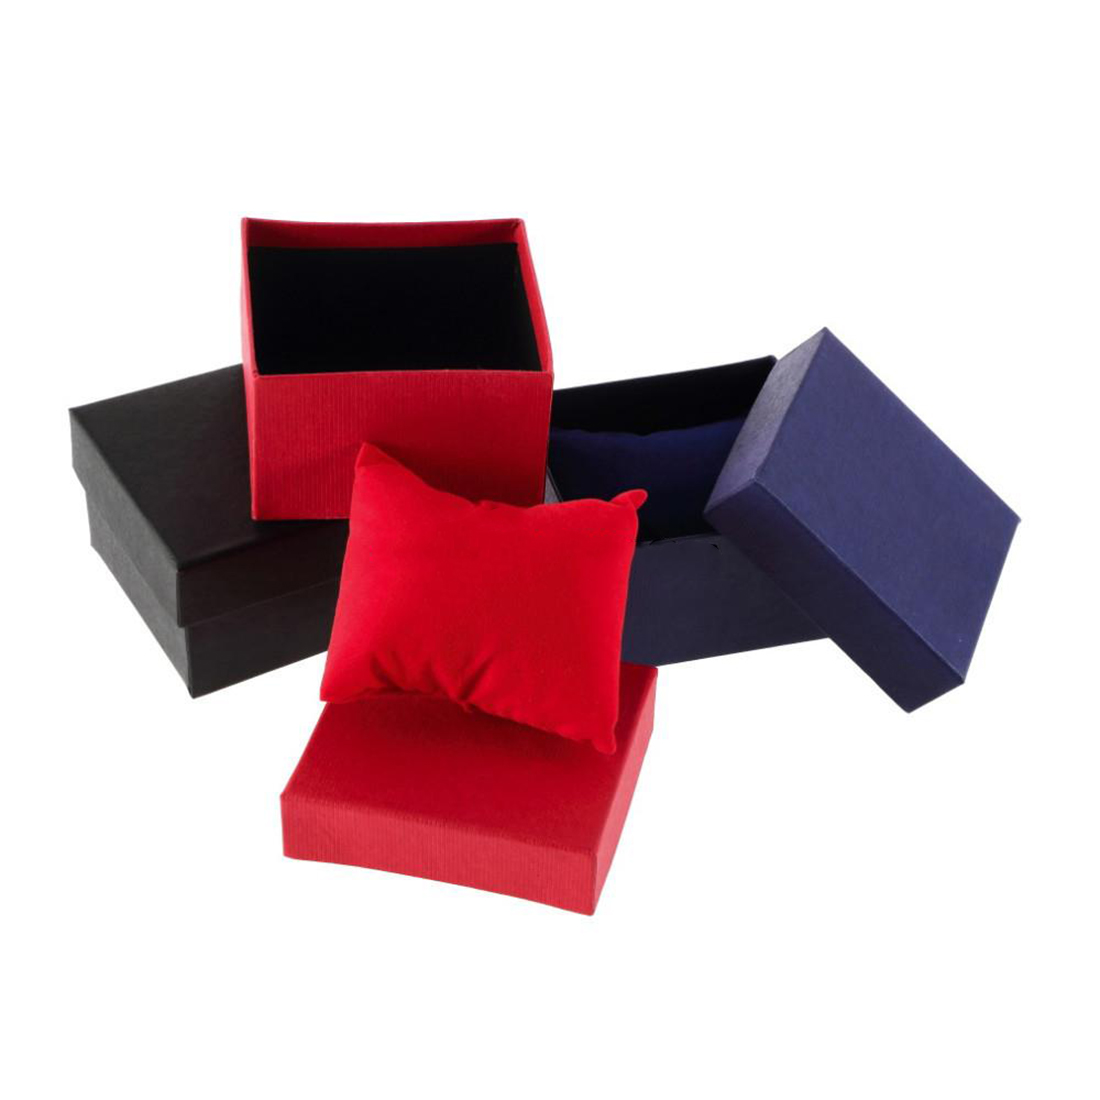 2016 Durable Present Gift Jewelry Box Gift Boxes for Bracelet Earrings Unique Design Bracelet Case Watch Box with Foam Pad